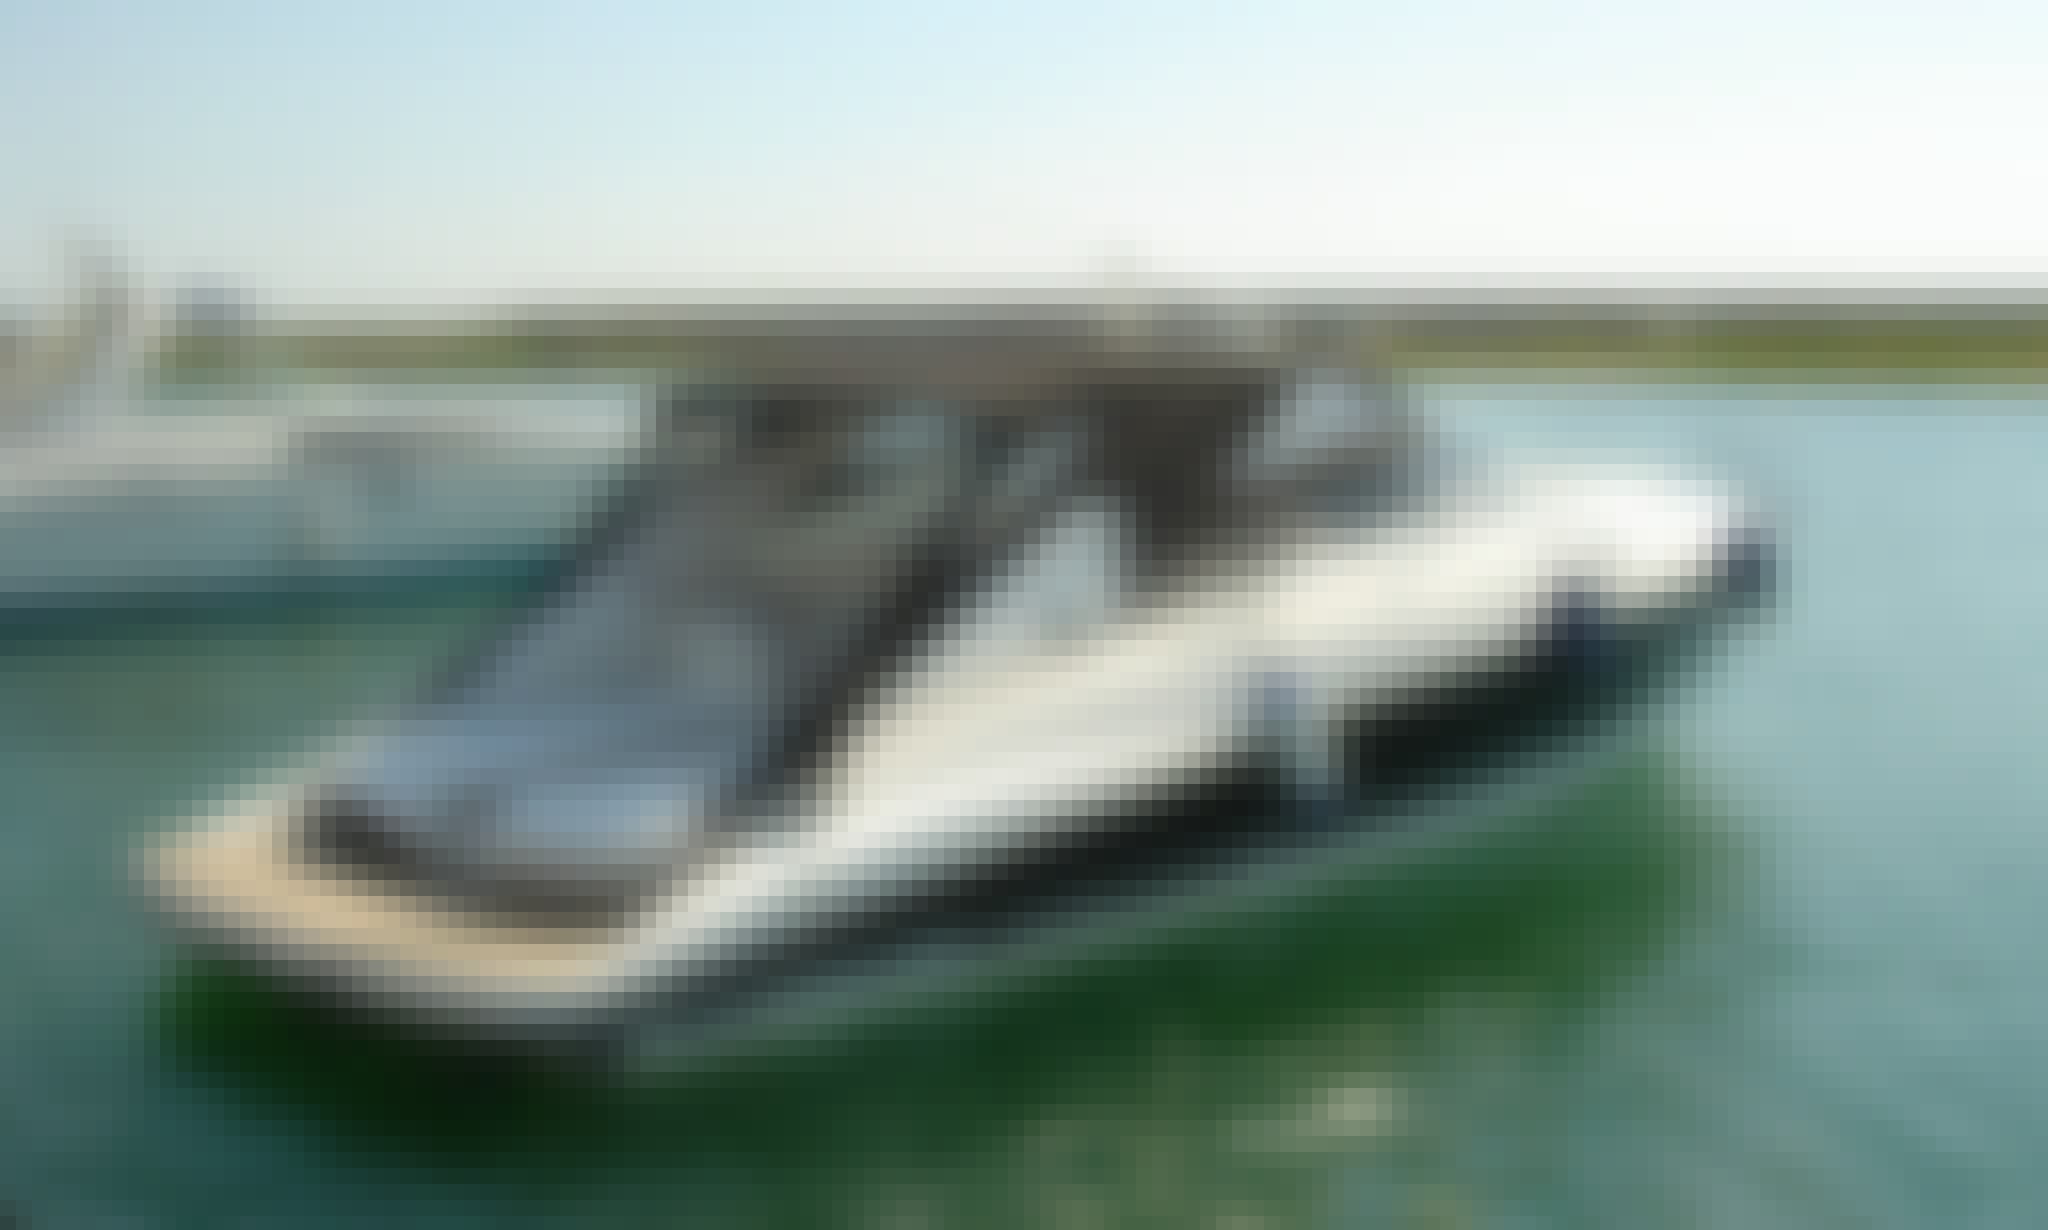 Charter this 8 person Sunseeker Motor Yacht in Varna, Bulgaria!